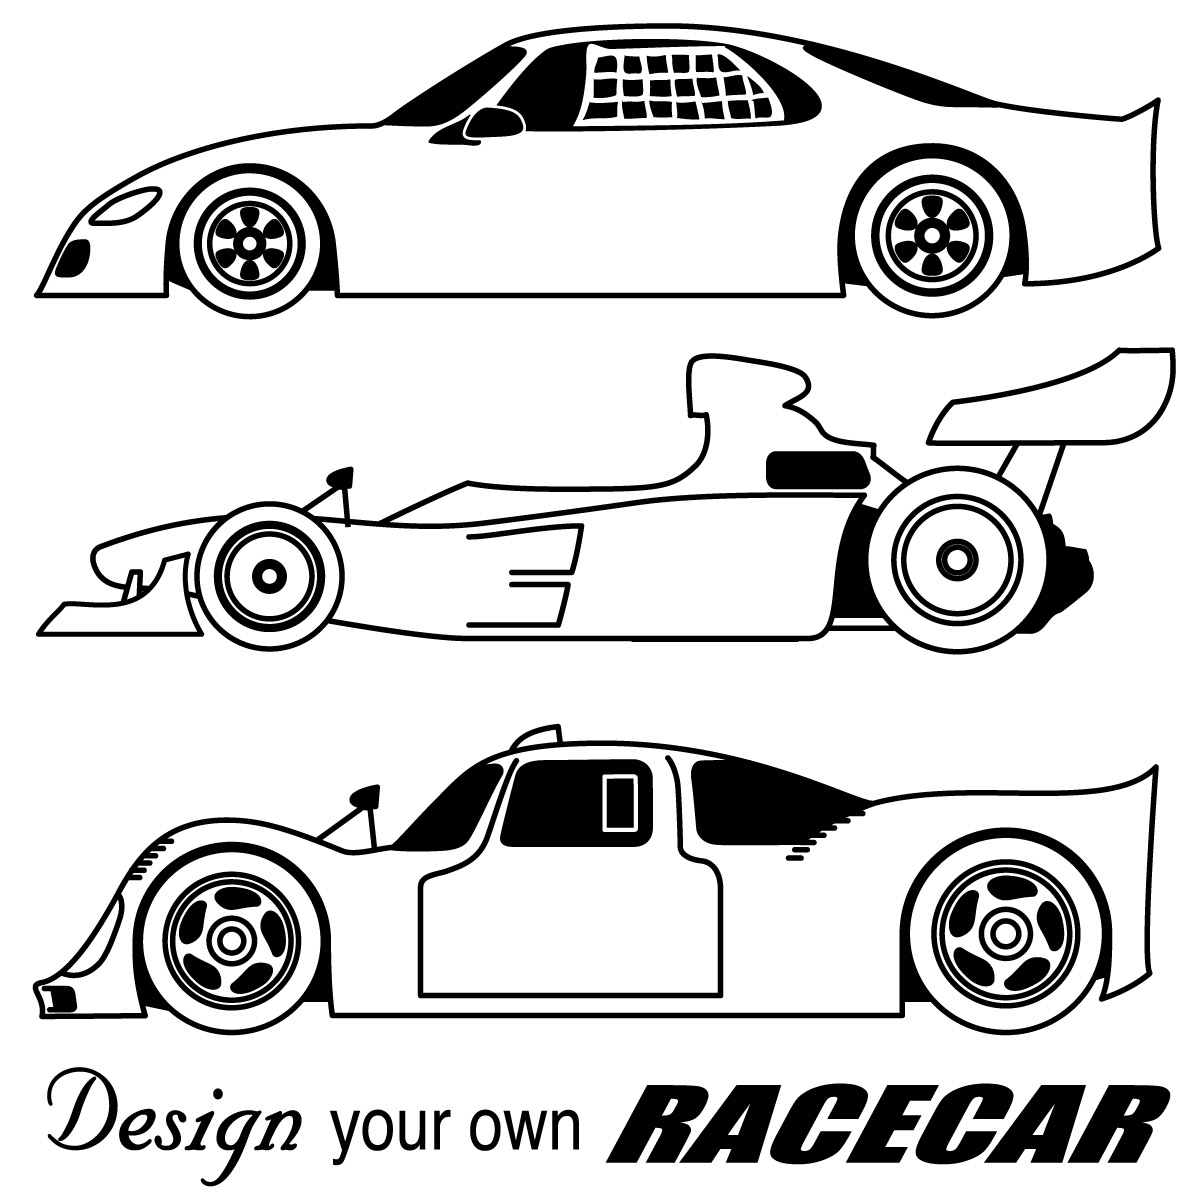 Nascar Race Car Black Clipart.